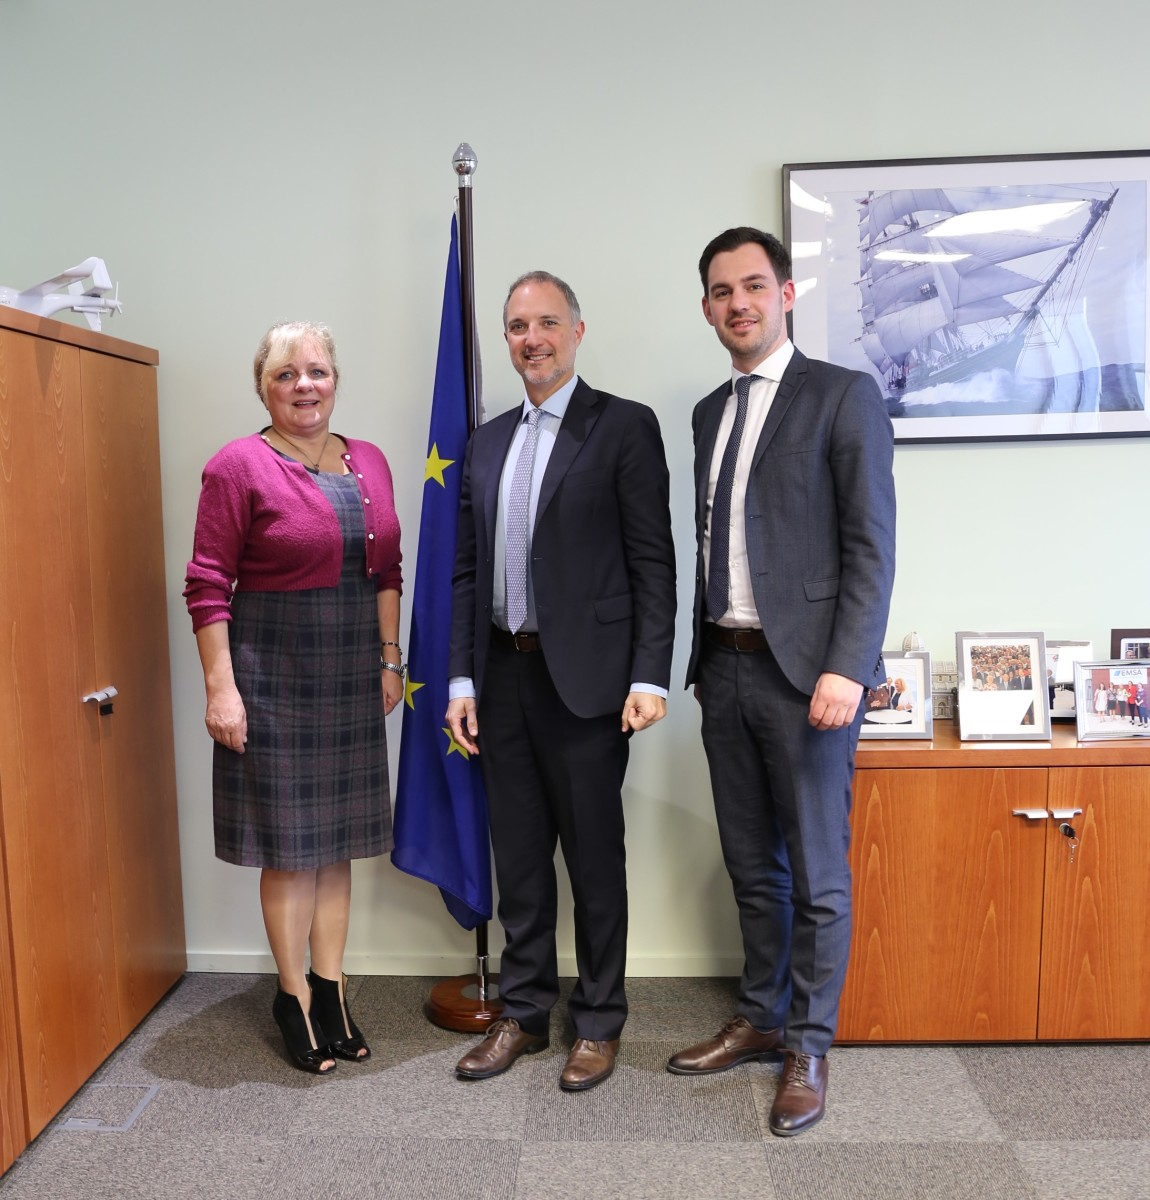 From left to right: Maja Markovčić Kostelac, Executive Director of the European Maritime Safety Agency (EMSA); Stefano Pagani Isnardi, Research Department Manager, Confindustria Nautica; Philip Easthill, Secretary-General of EBI